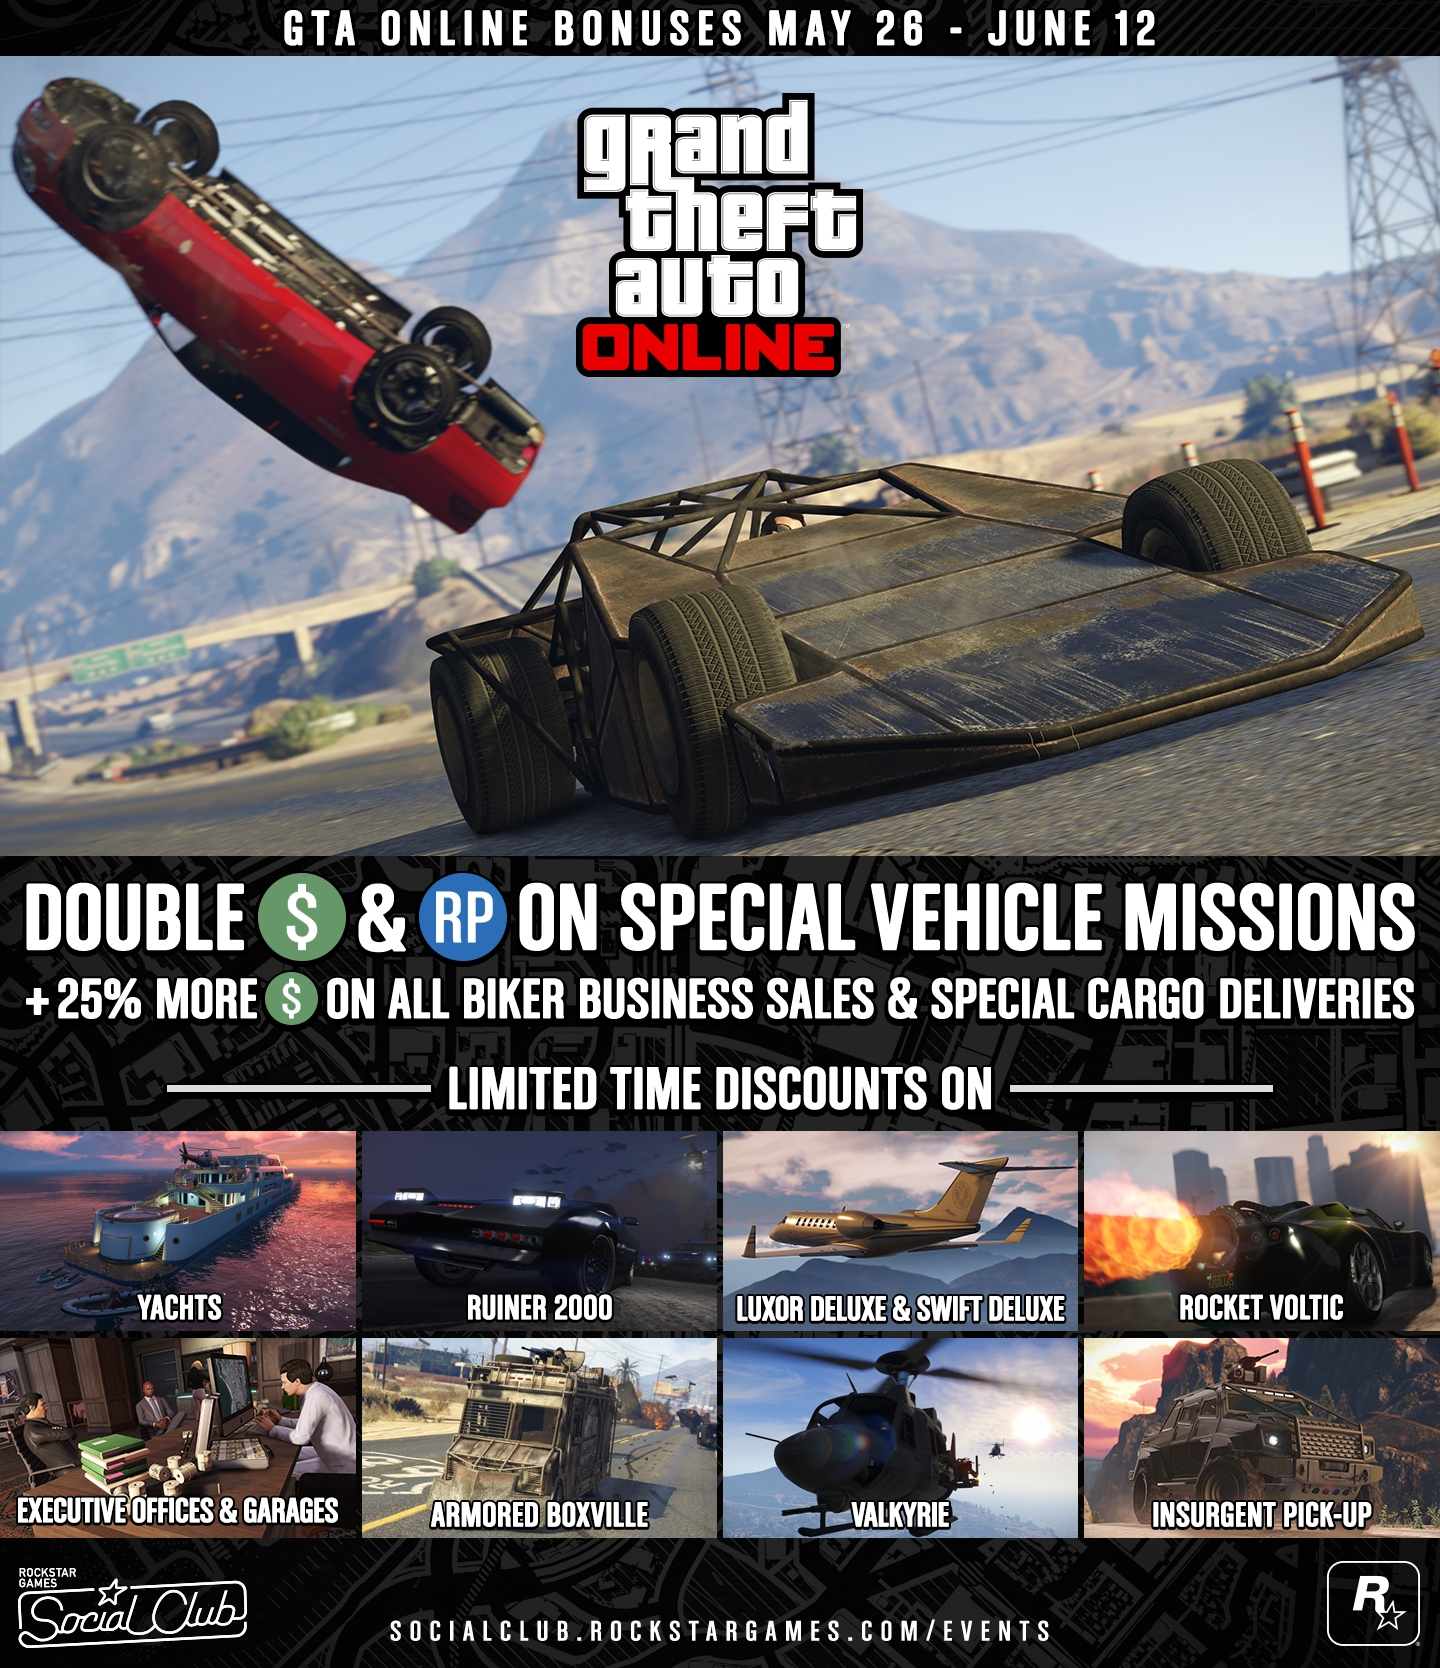 GTA Online Bonuses: Double GTA$ & RP Opportunities + Limited